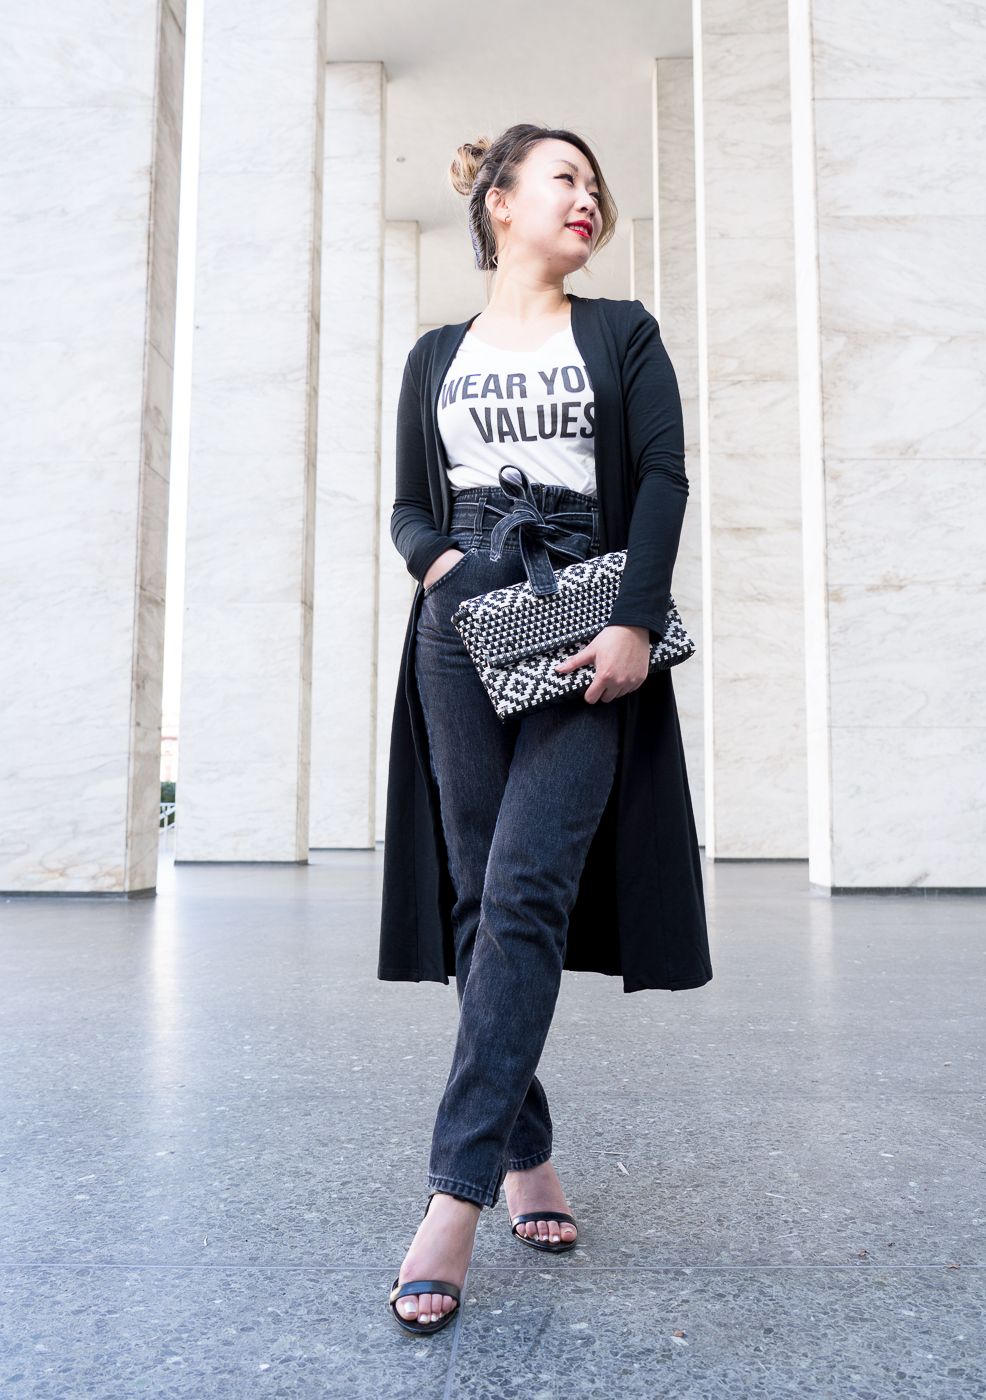 Reformation Black Belted Jeans | The Chic Diary